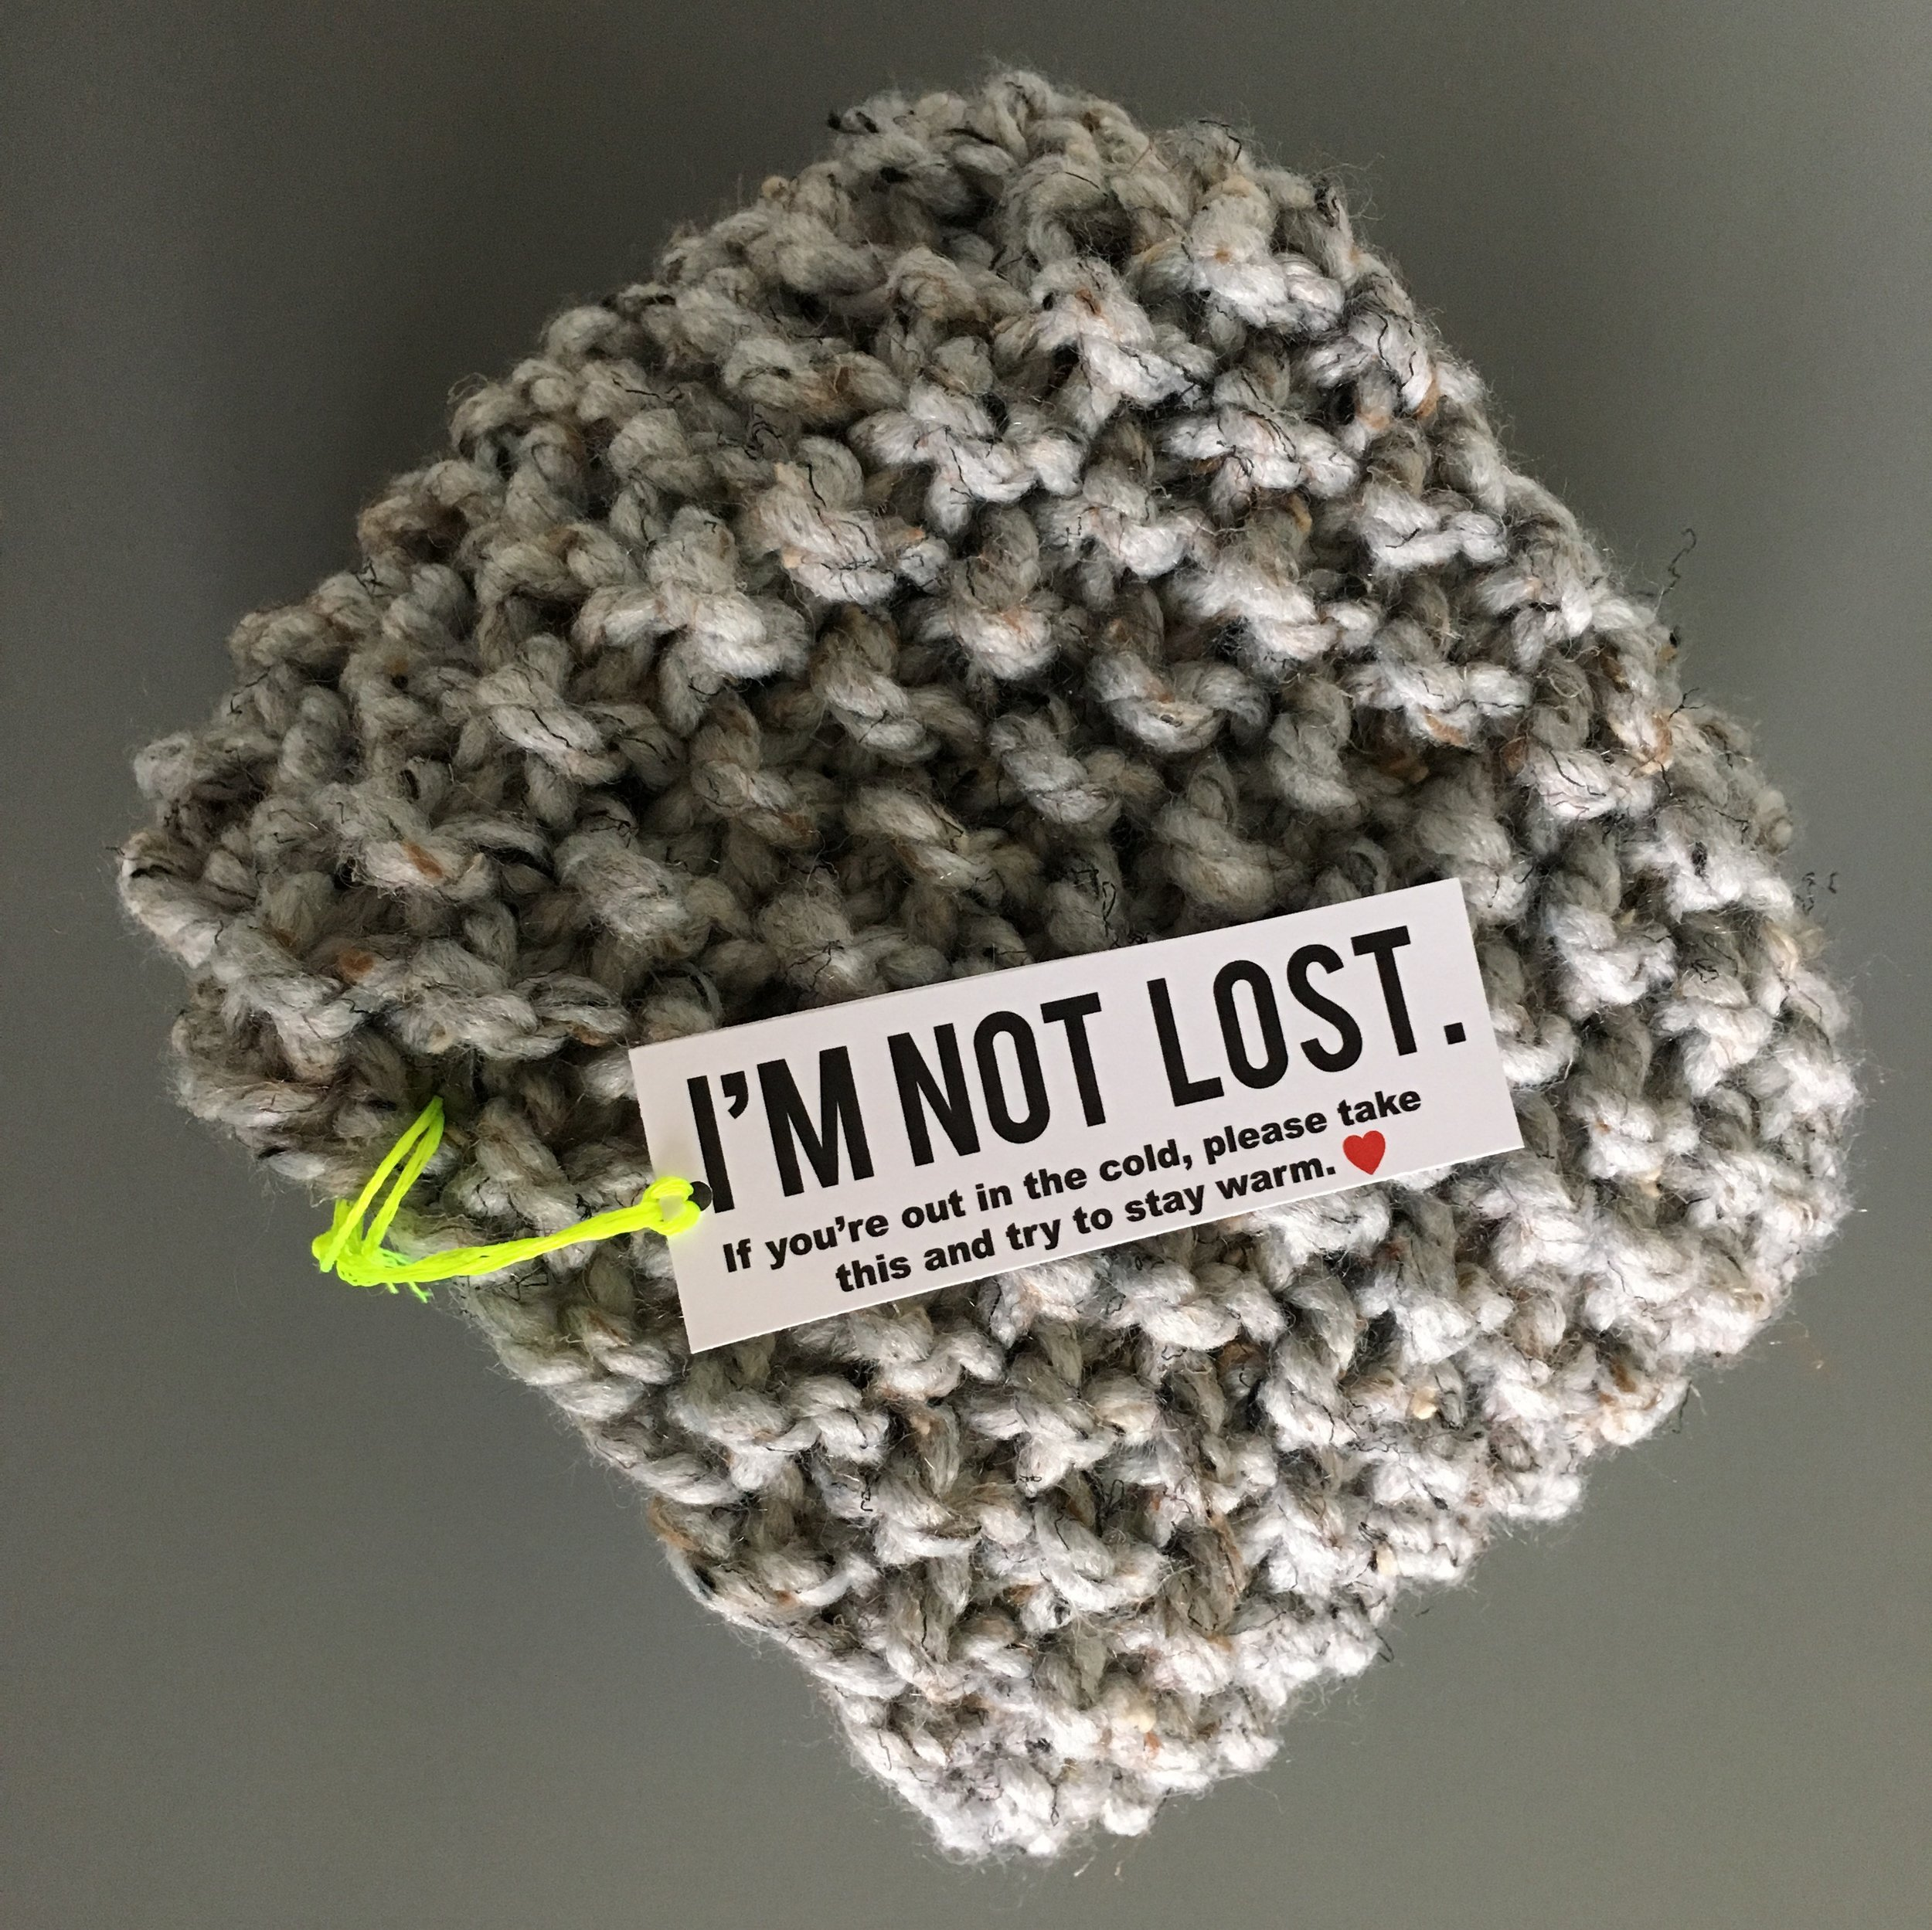 im not lost tag